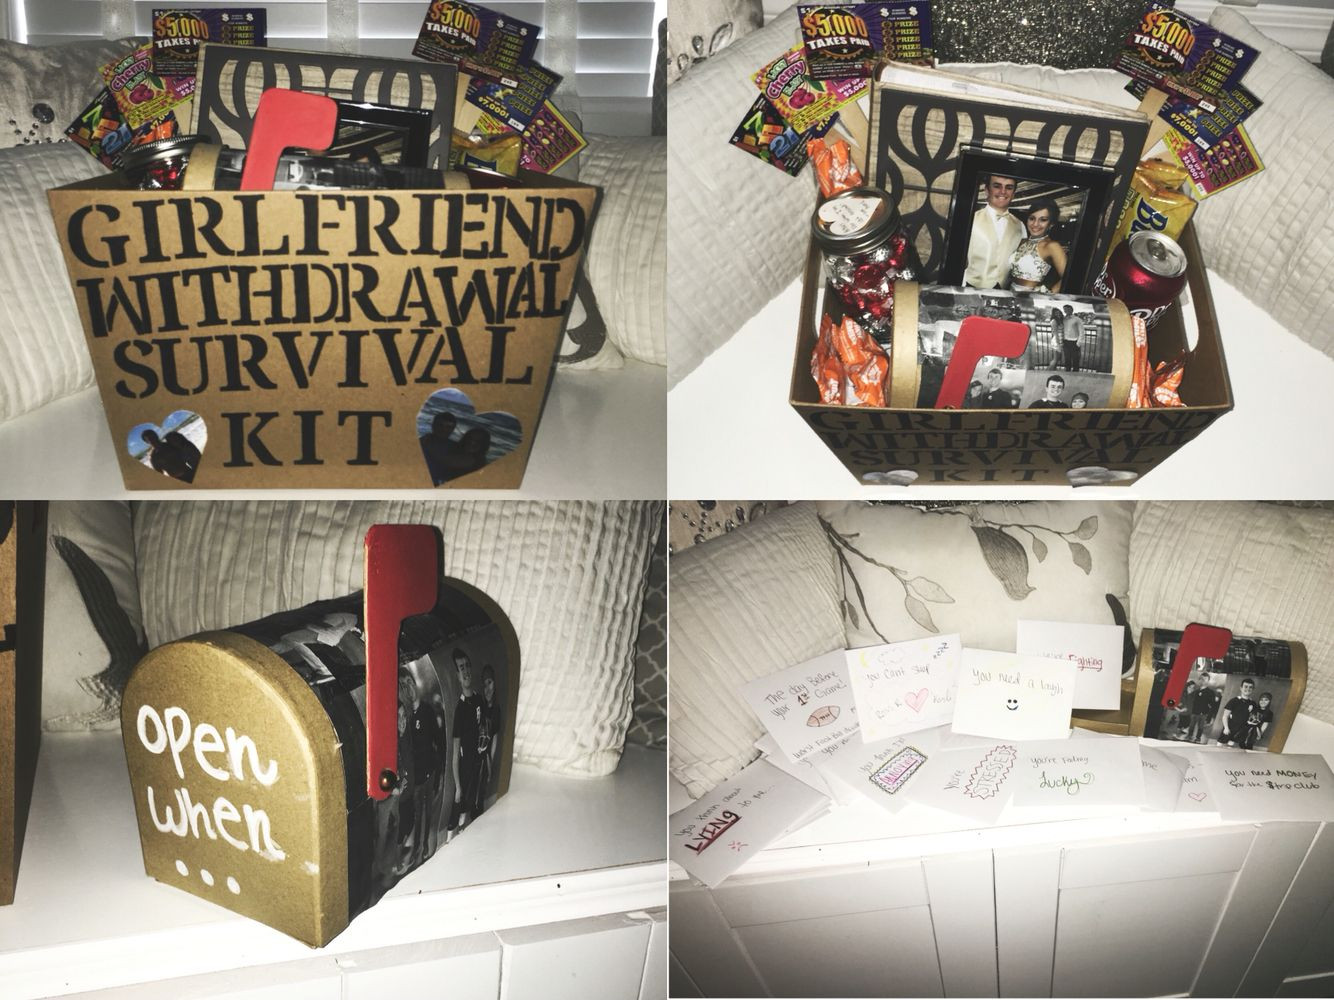 College Girlfriend Gift Ideas  Girlfriend withdrawal survival kit and open when letters